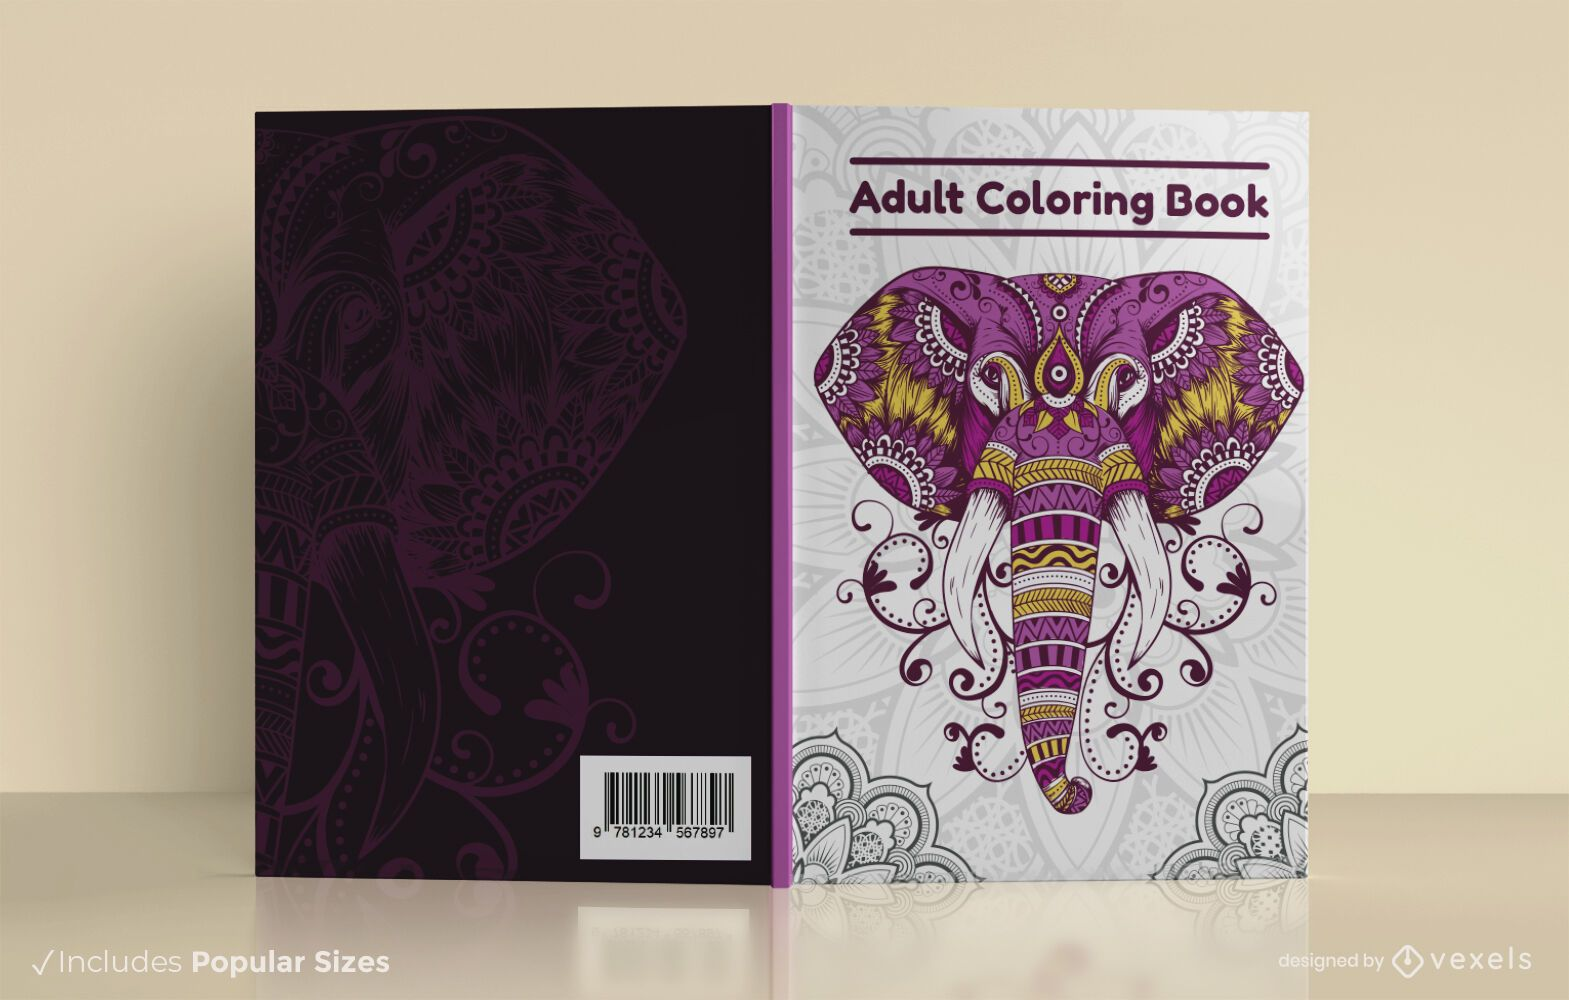 Adult coloring book cover design